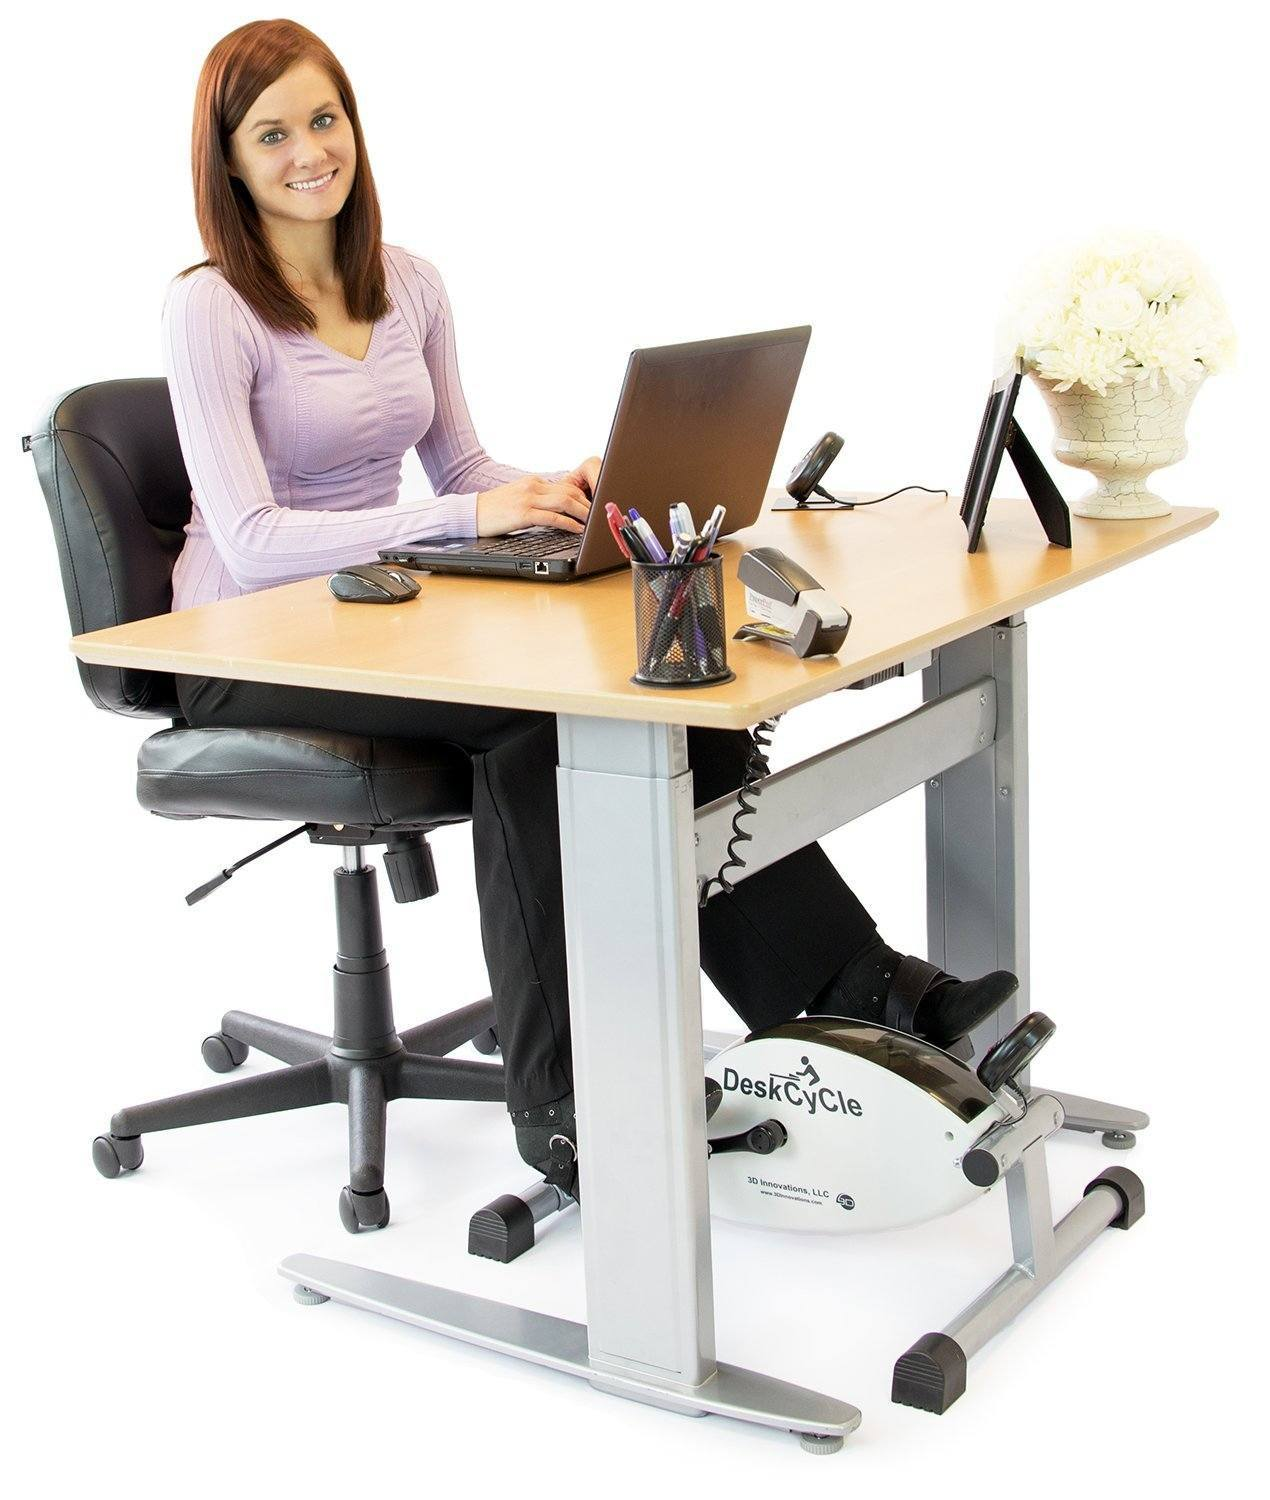 Pedal Exerciser For Ms: DeskCycle Desk Exercise Bike: Stay Active At Work